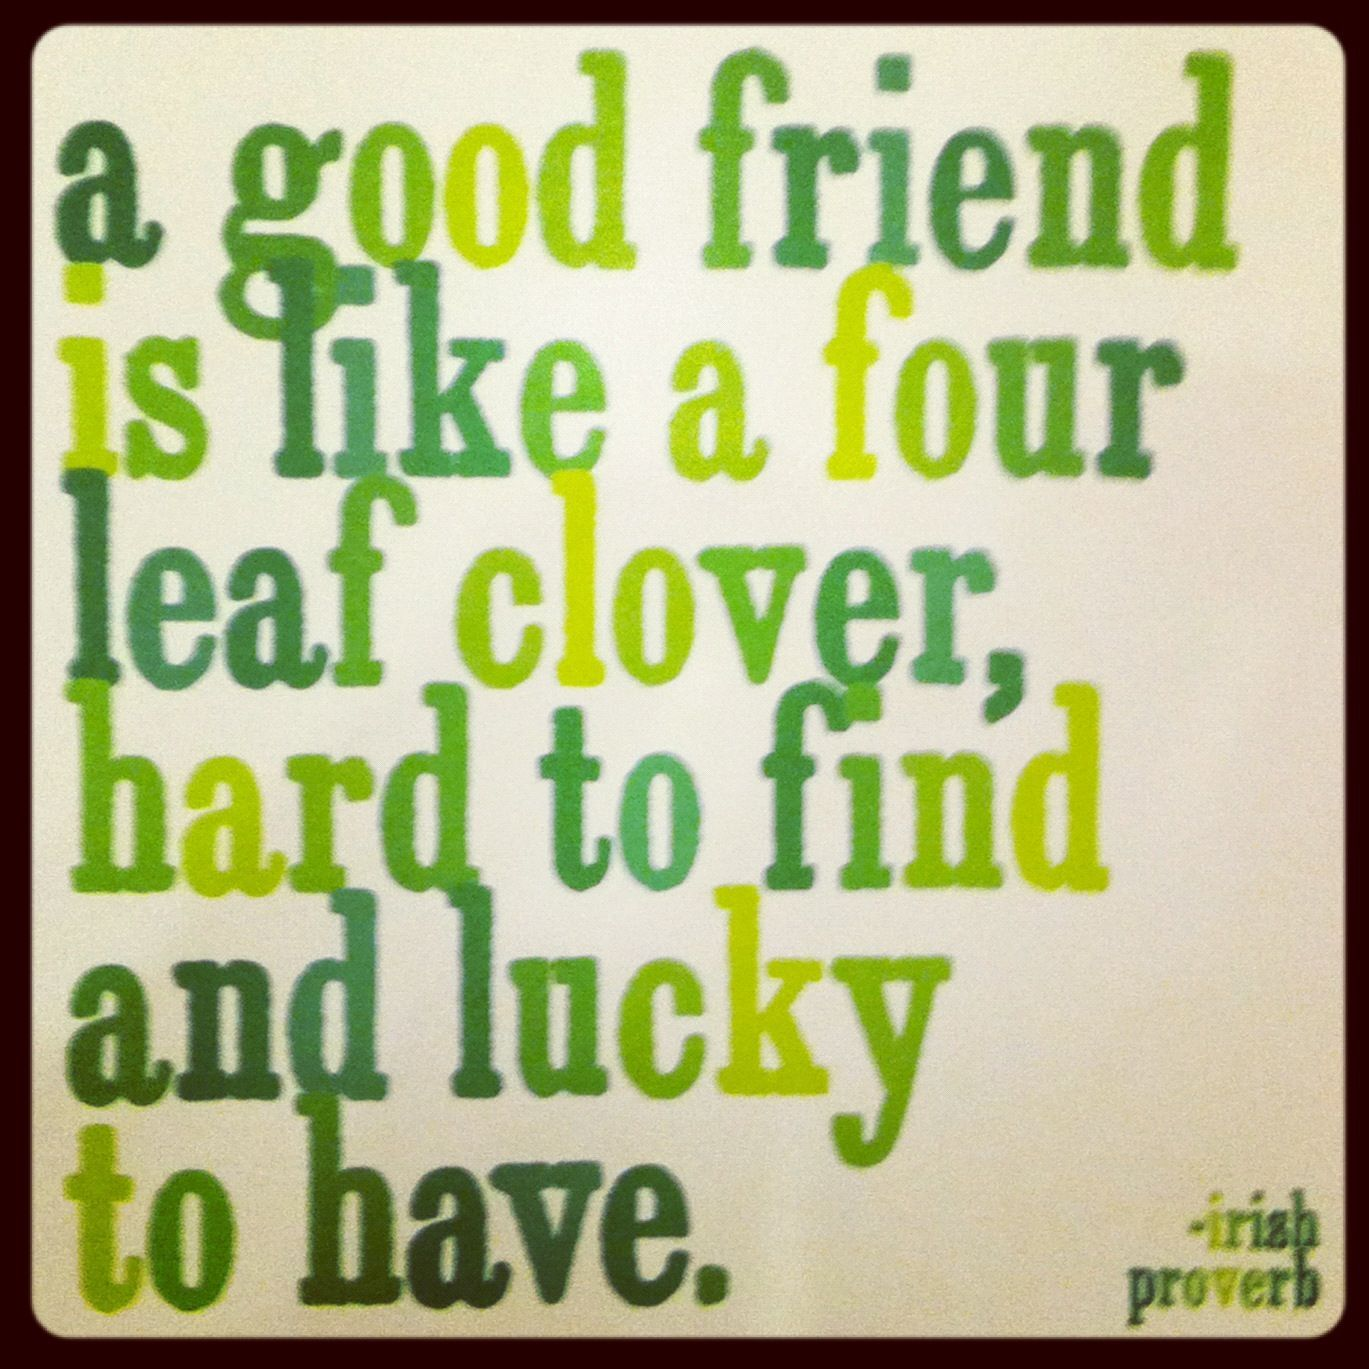 Famous Irish Quotes About Life Quote Of March 17 2017 Happy Stpatrick's Day  Quote Of The Day